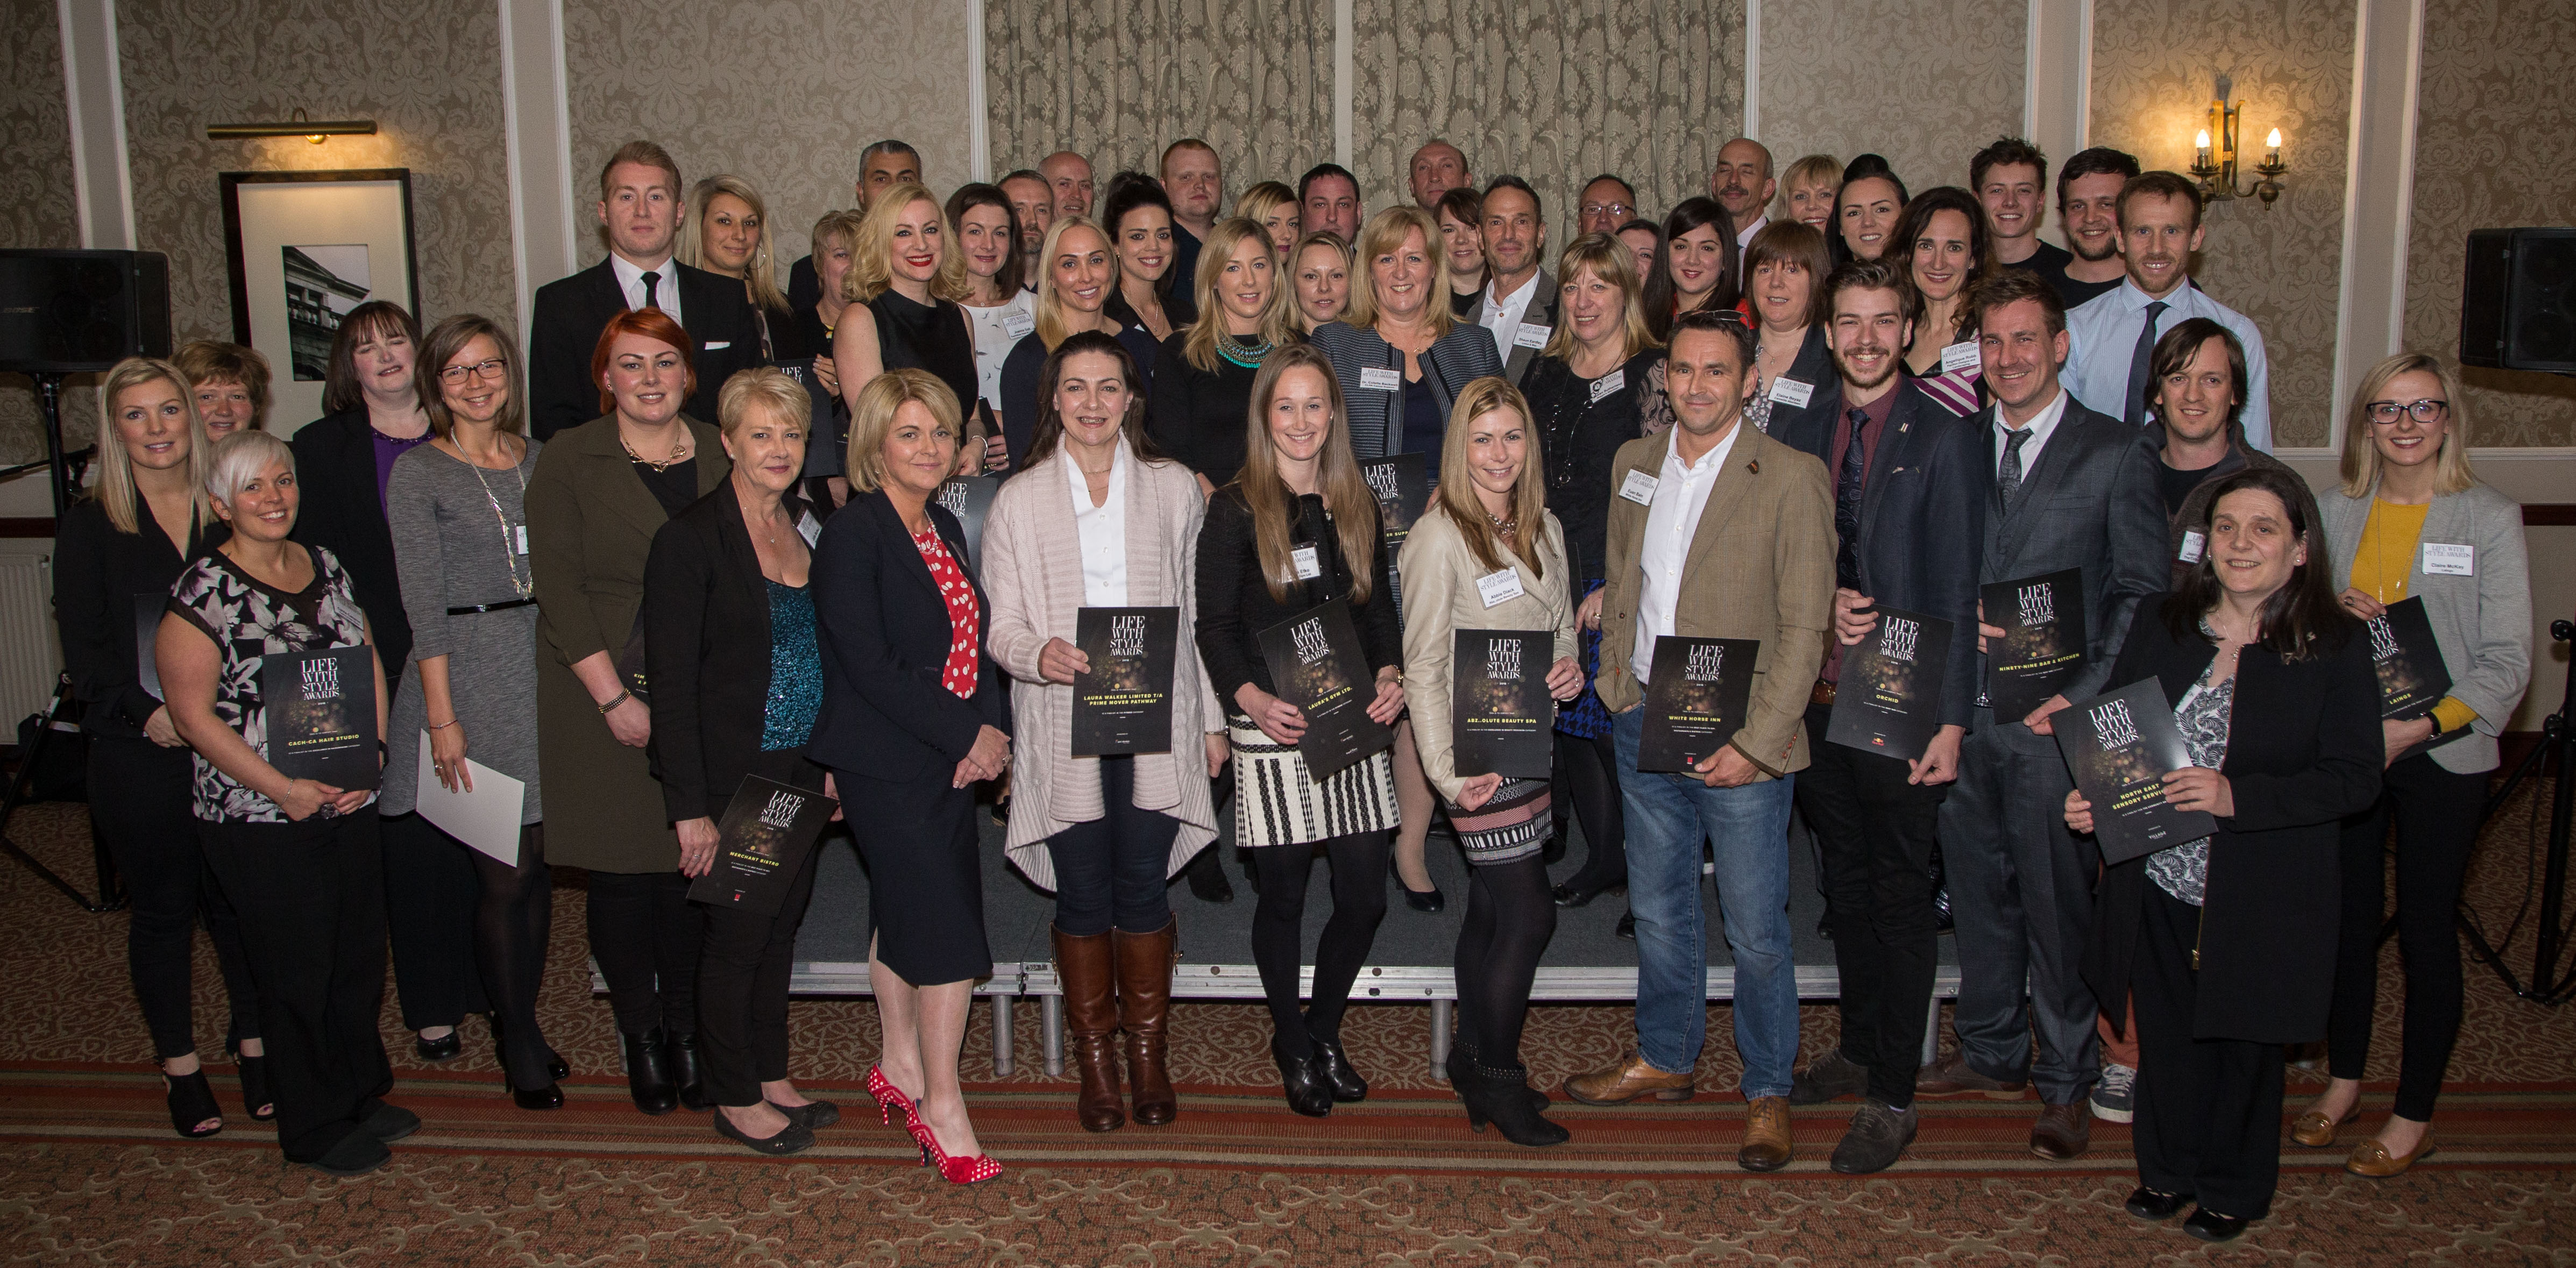 TREND FINALISTS NIGHT AT NORWOOD HOUSE HOTEL PIC DEREK IRONSIDE / NEWSLINE MEDIA